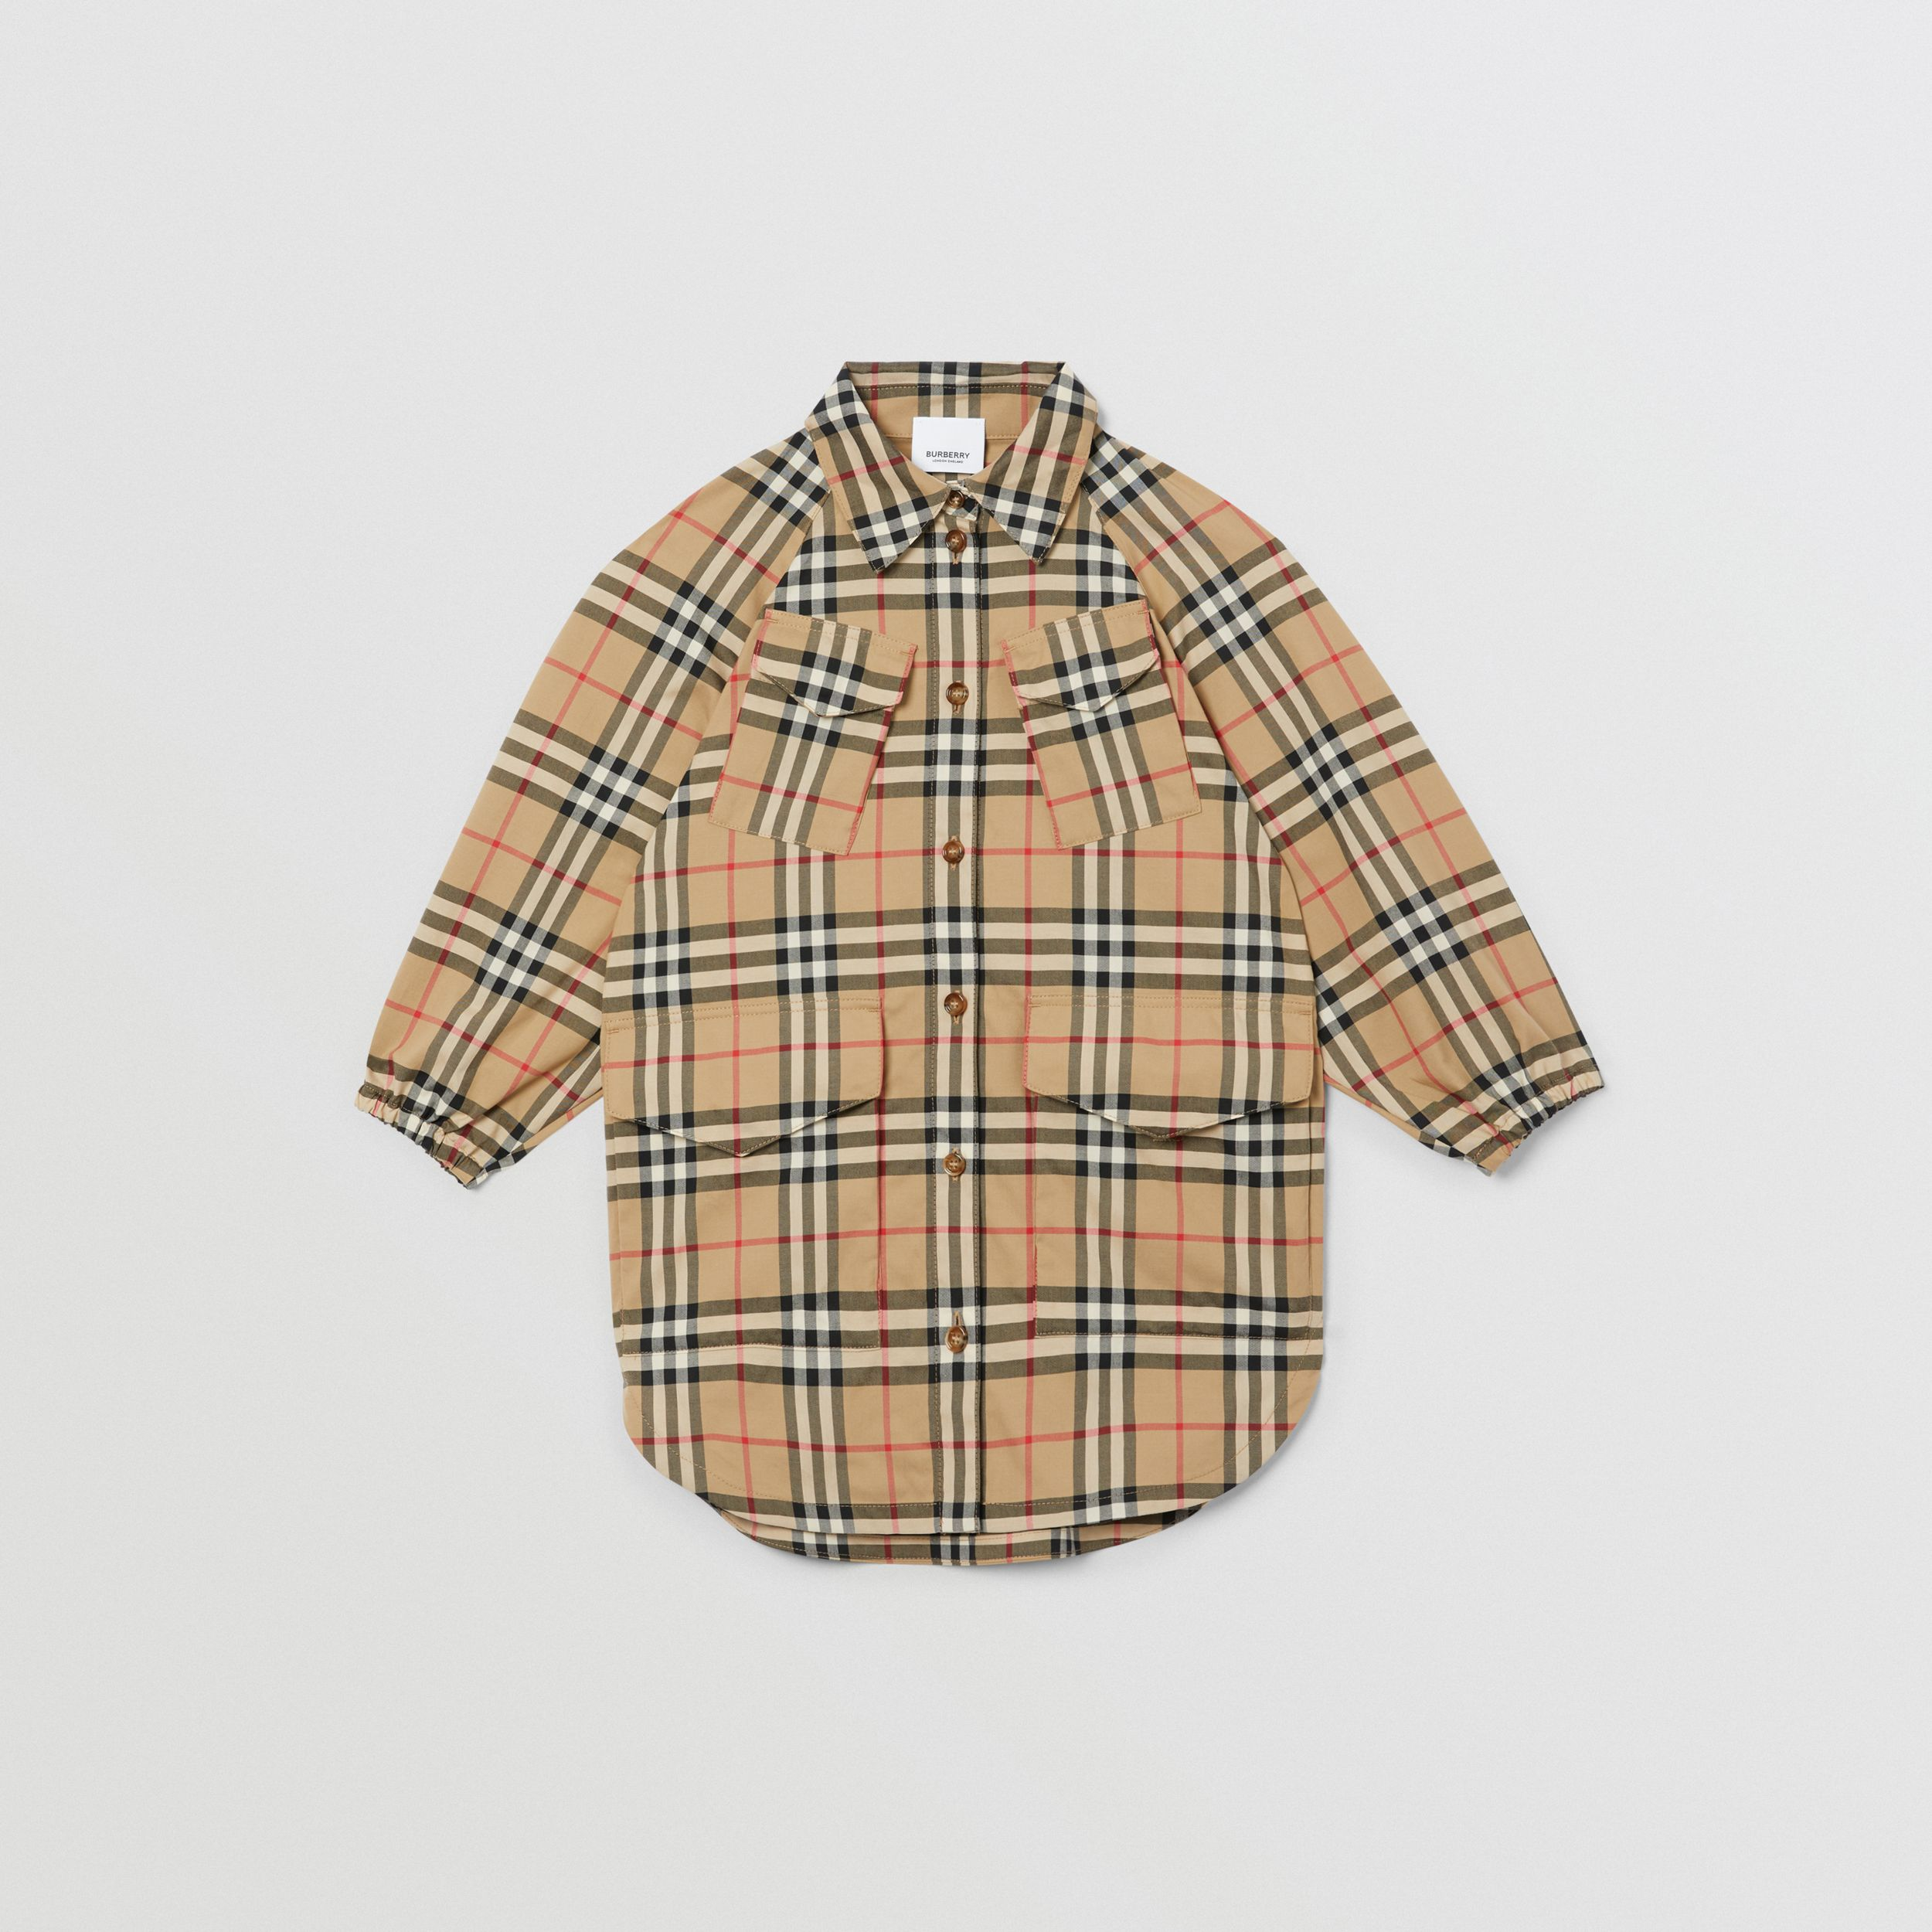 Vintage Check Cotton Shirt Dress in Archive Beige | Burberry - 1